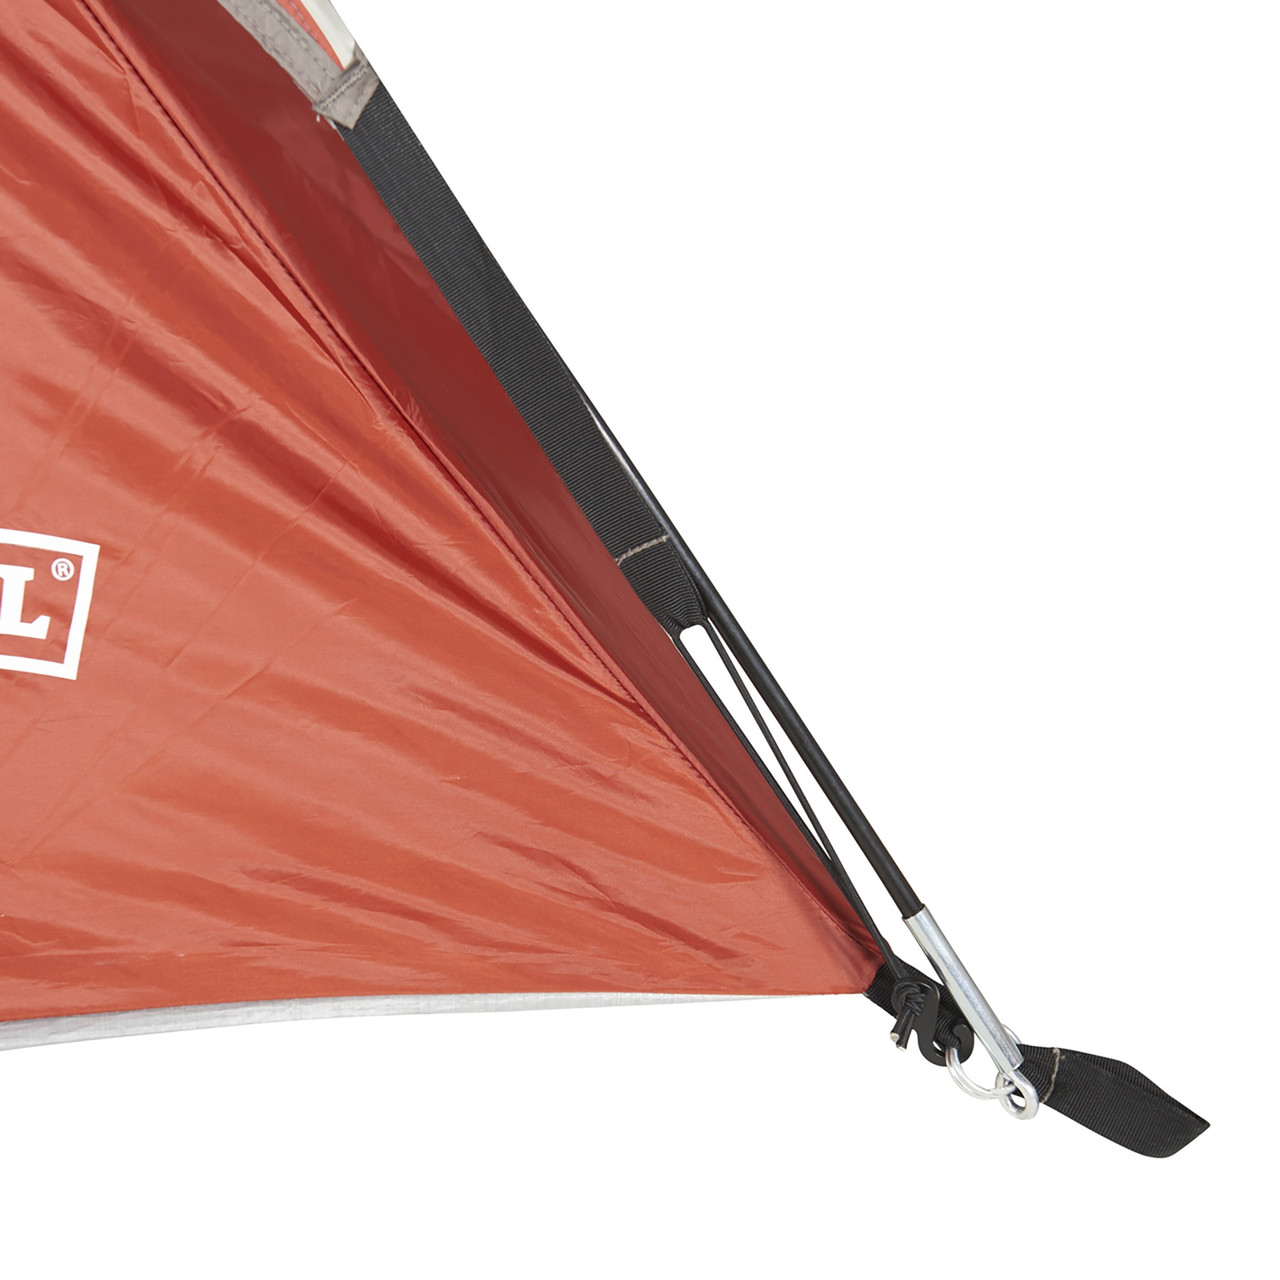 Close up of Wenzel Torry 2 Person Dome Tent, showing end of tent pole inserted into attachment point at bottom corner of tent